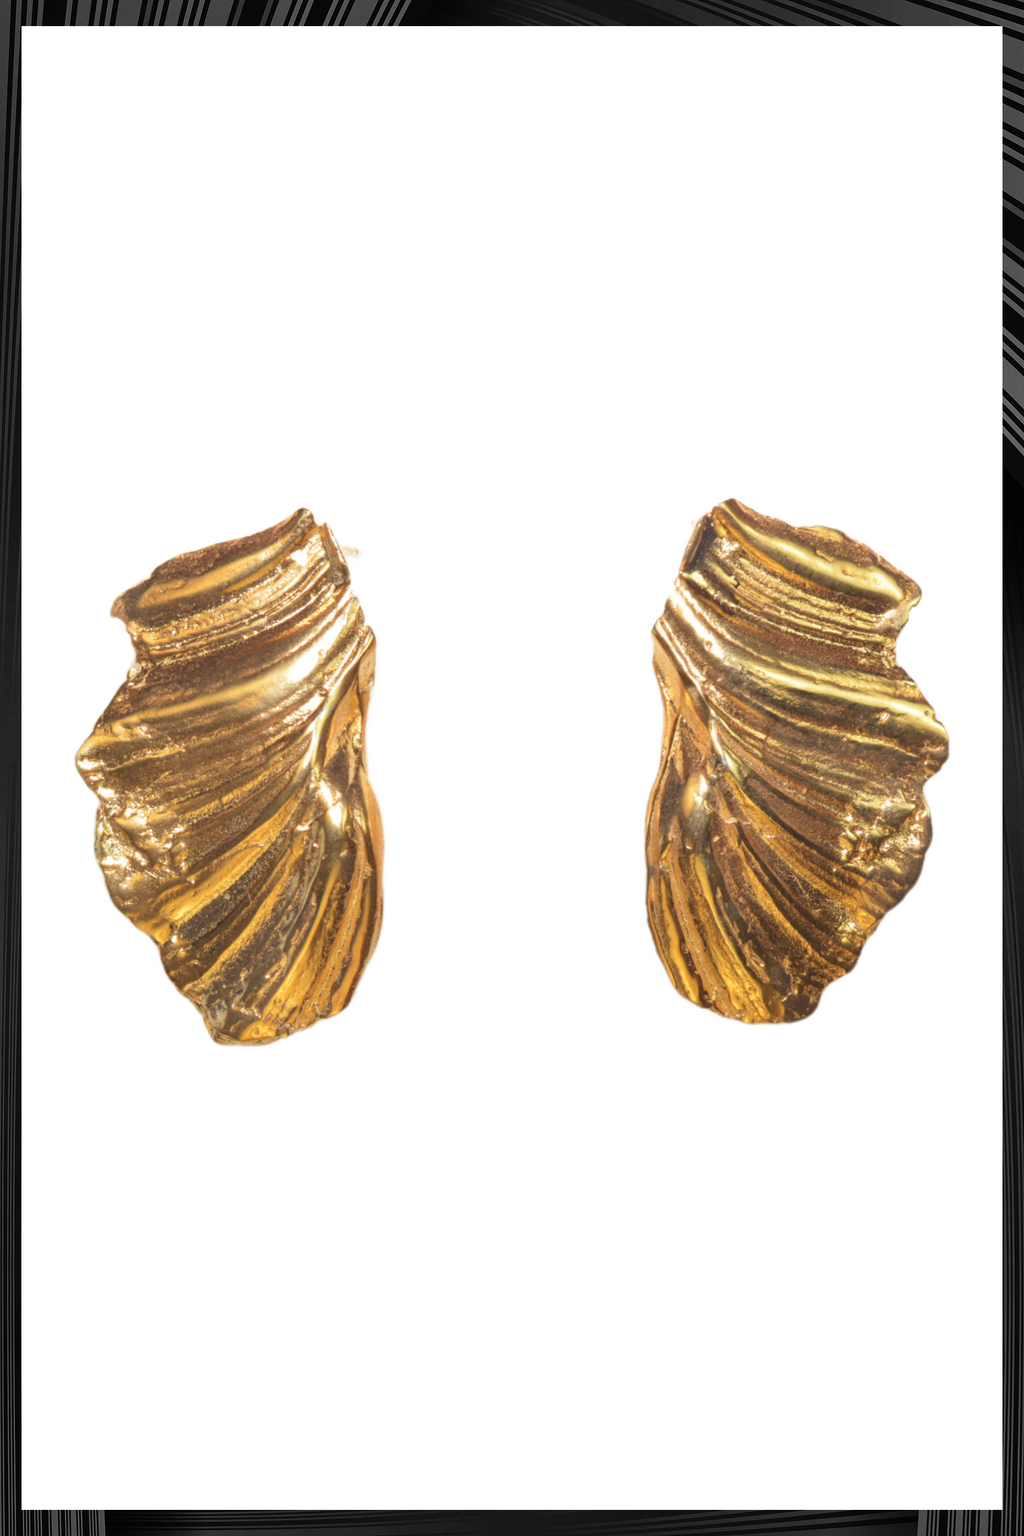 Amfithea Earrings | Free Delivery - 2-3 Week Delivery